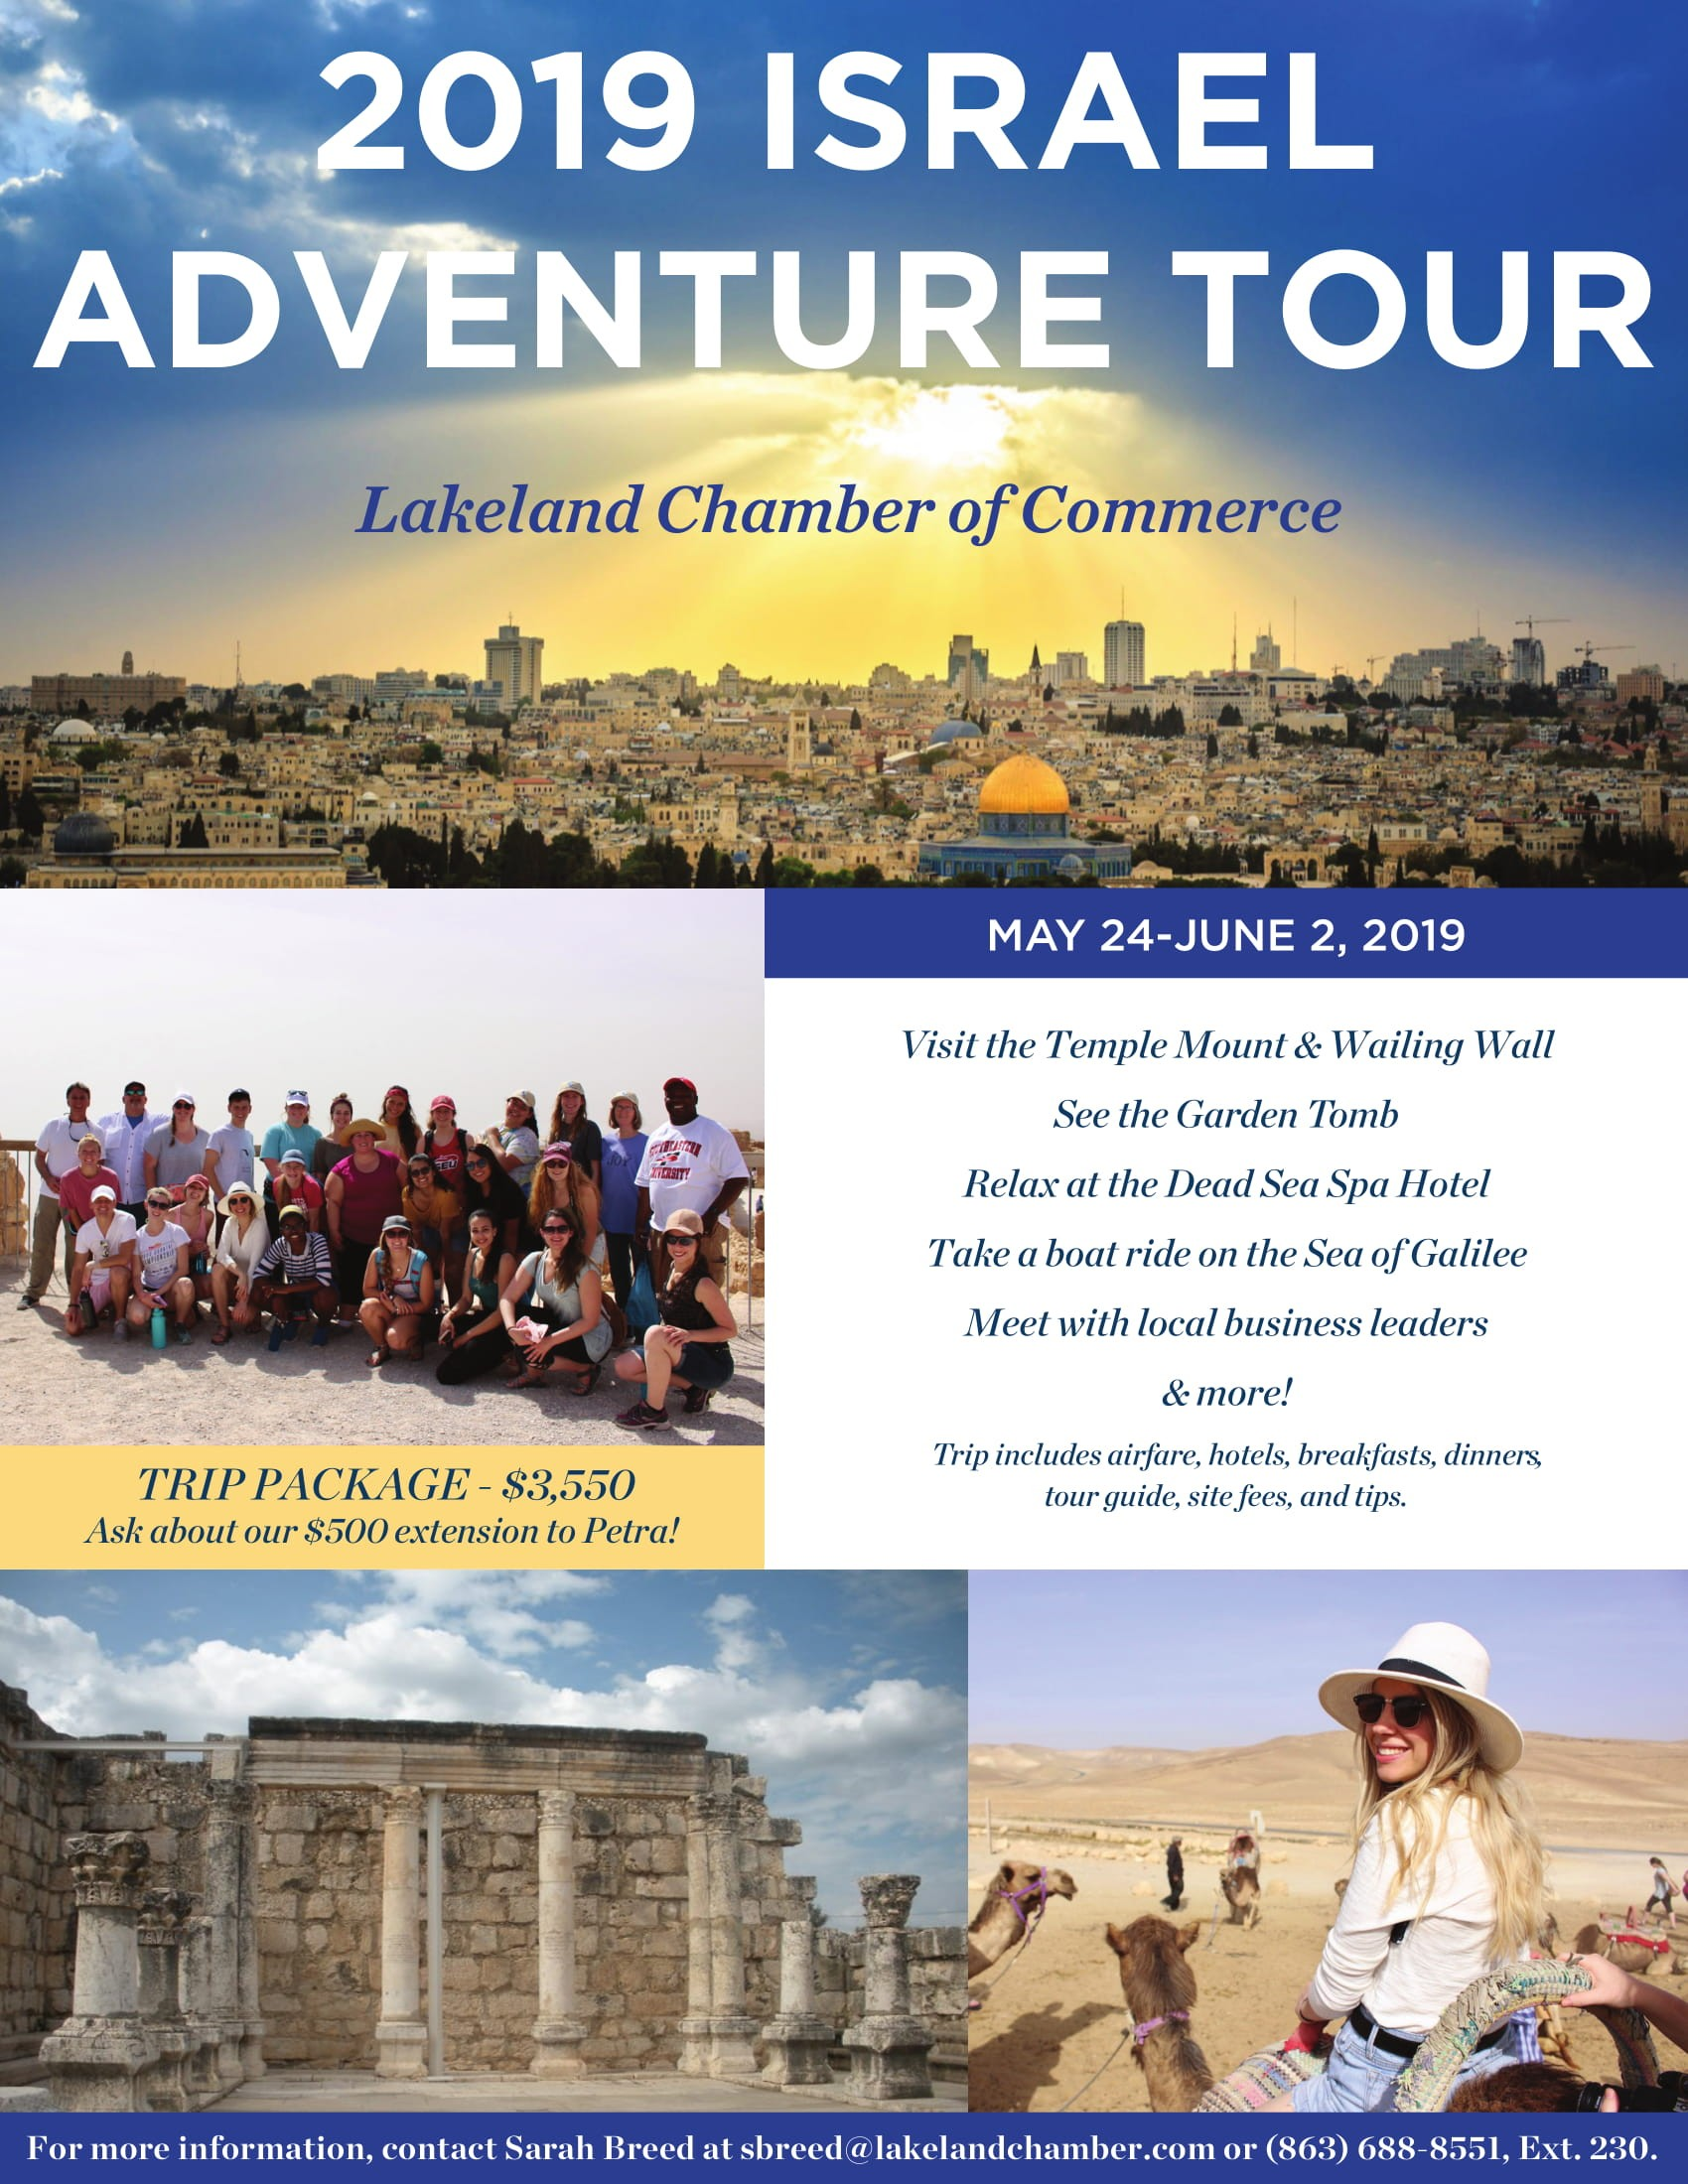 March 2019 Calendar Landscape Más Arriba-a-fecha Travel with the Lakeland Chamber the israel Adventure May 24 Of March 2019 Calendar Landscape Más Recientes 2010 Calendar